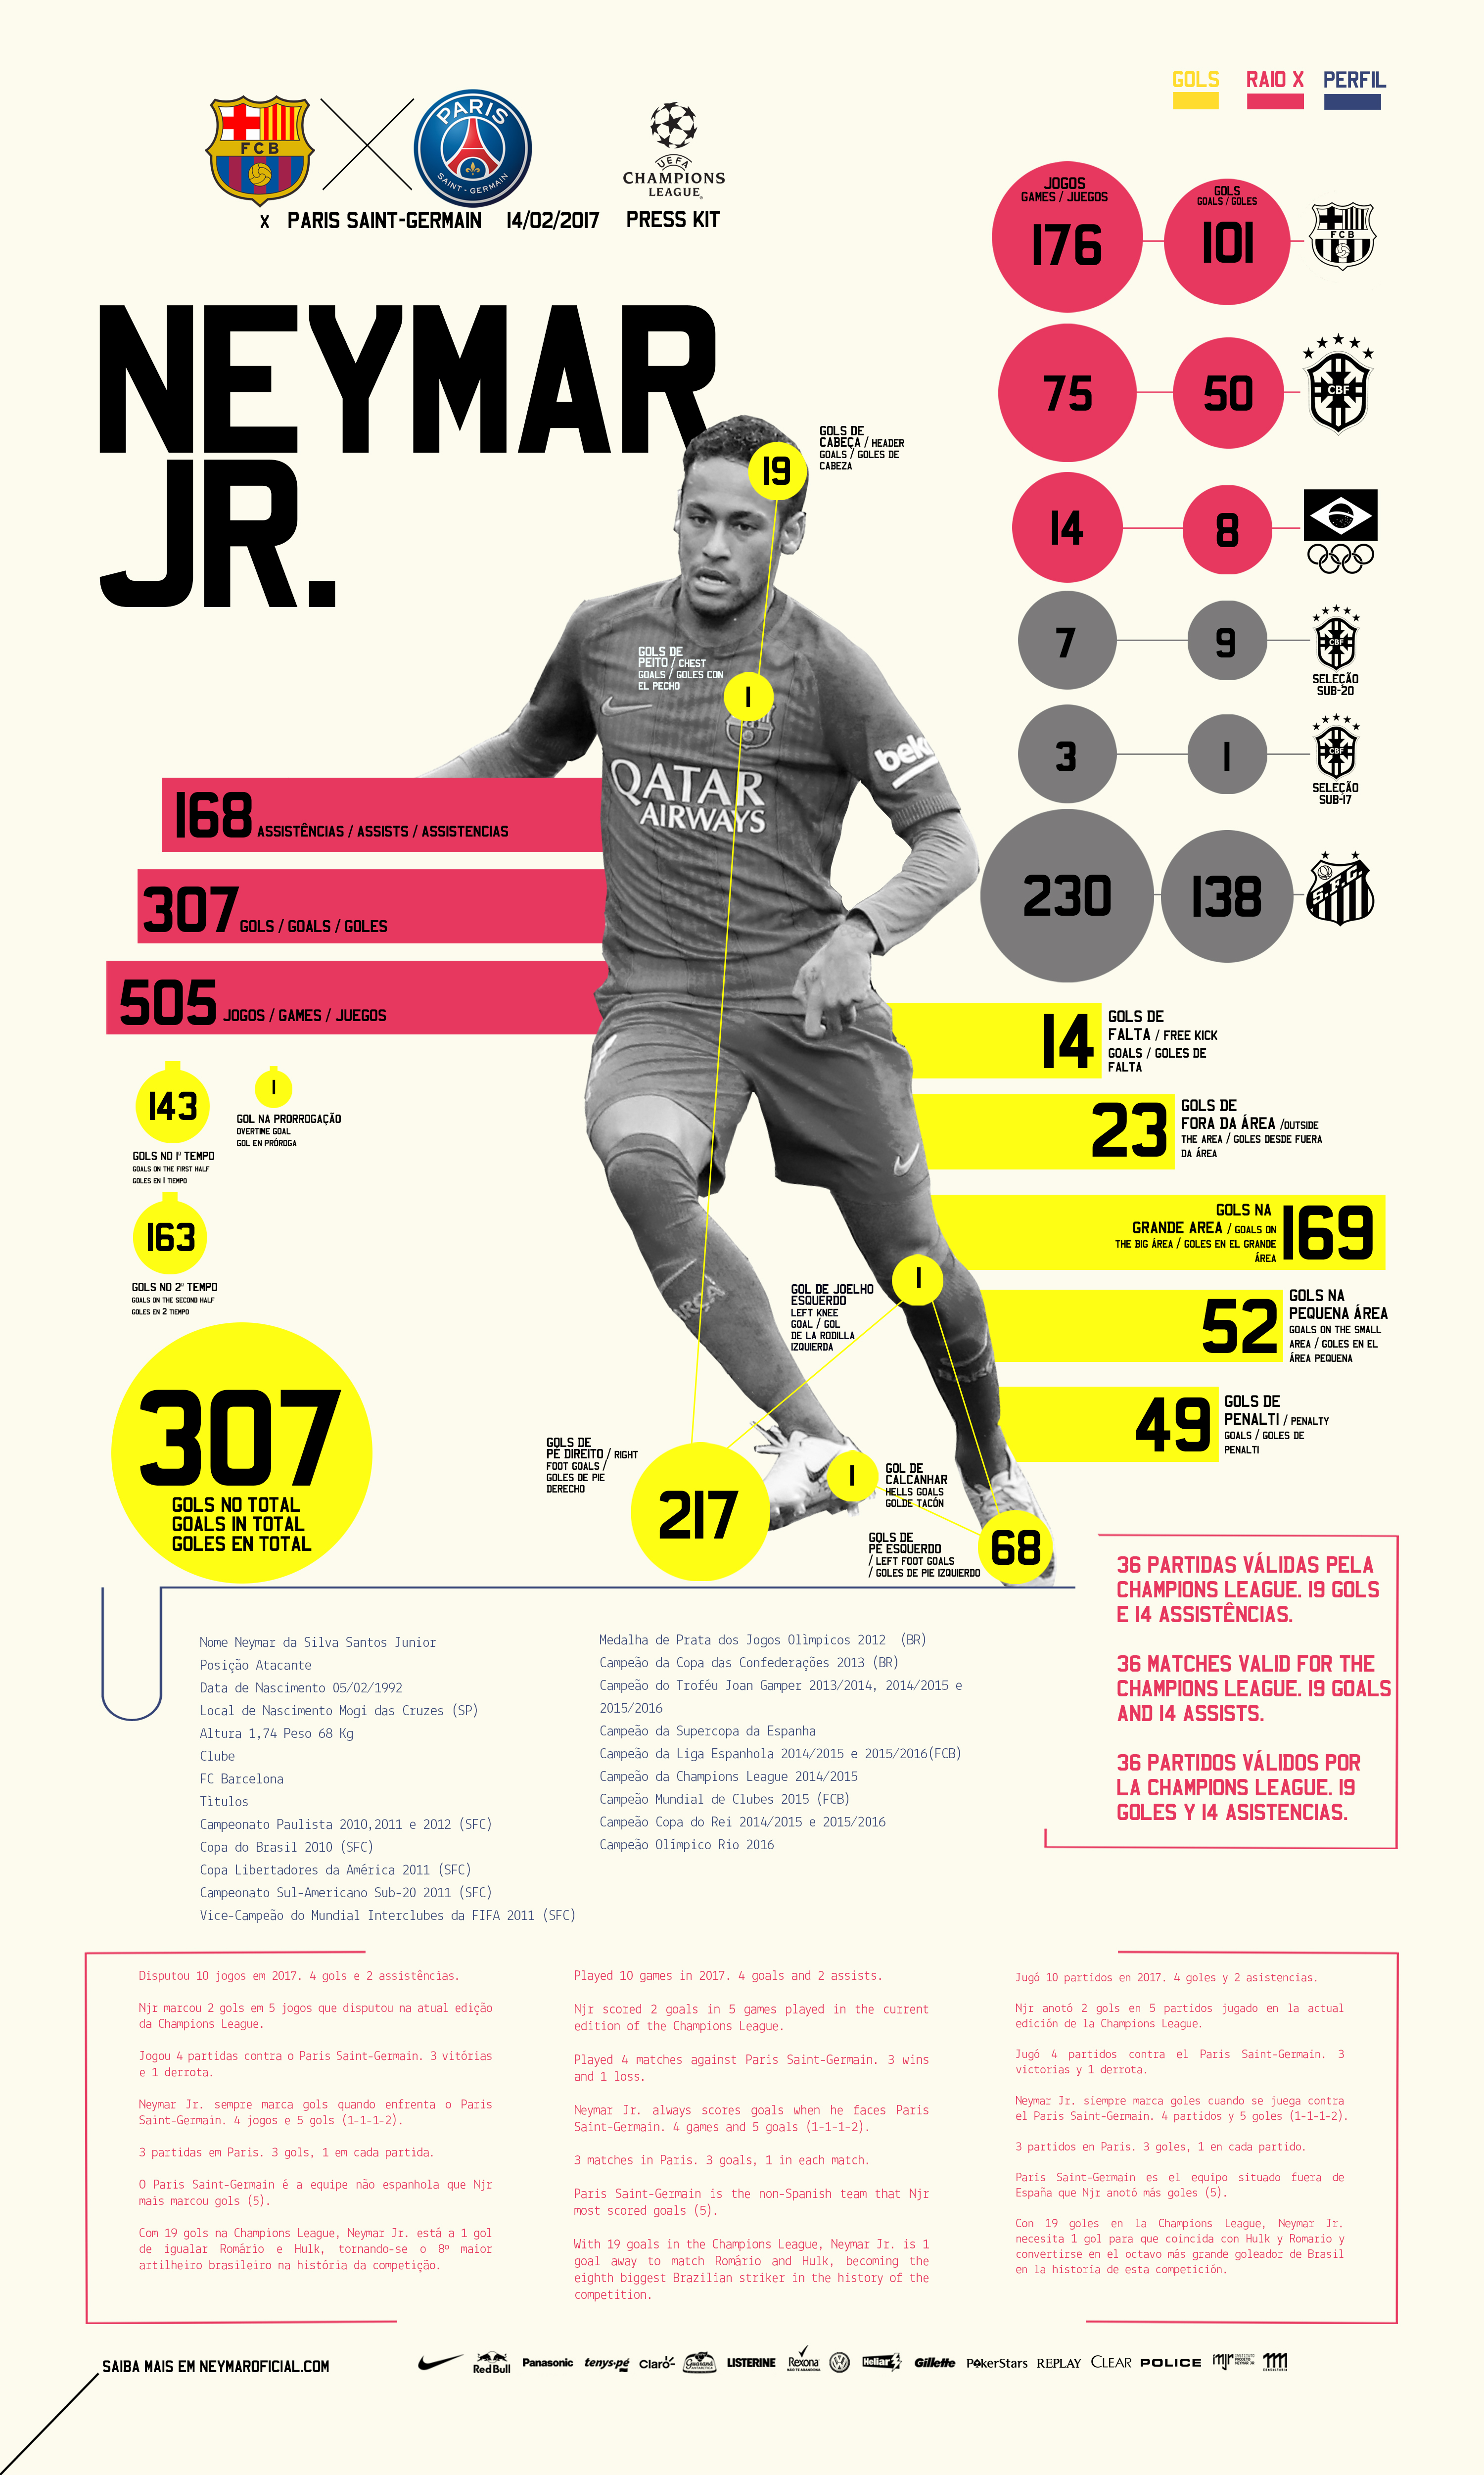 Press Kit - Neymar Jr - Paris Saint-Germain x Barcelona - Champions League  16 17 ef8ef8f8df92a